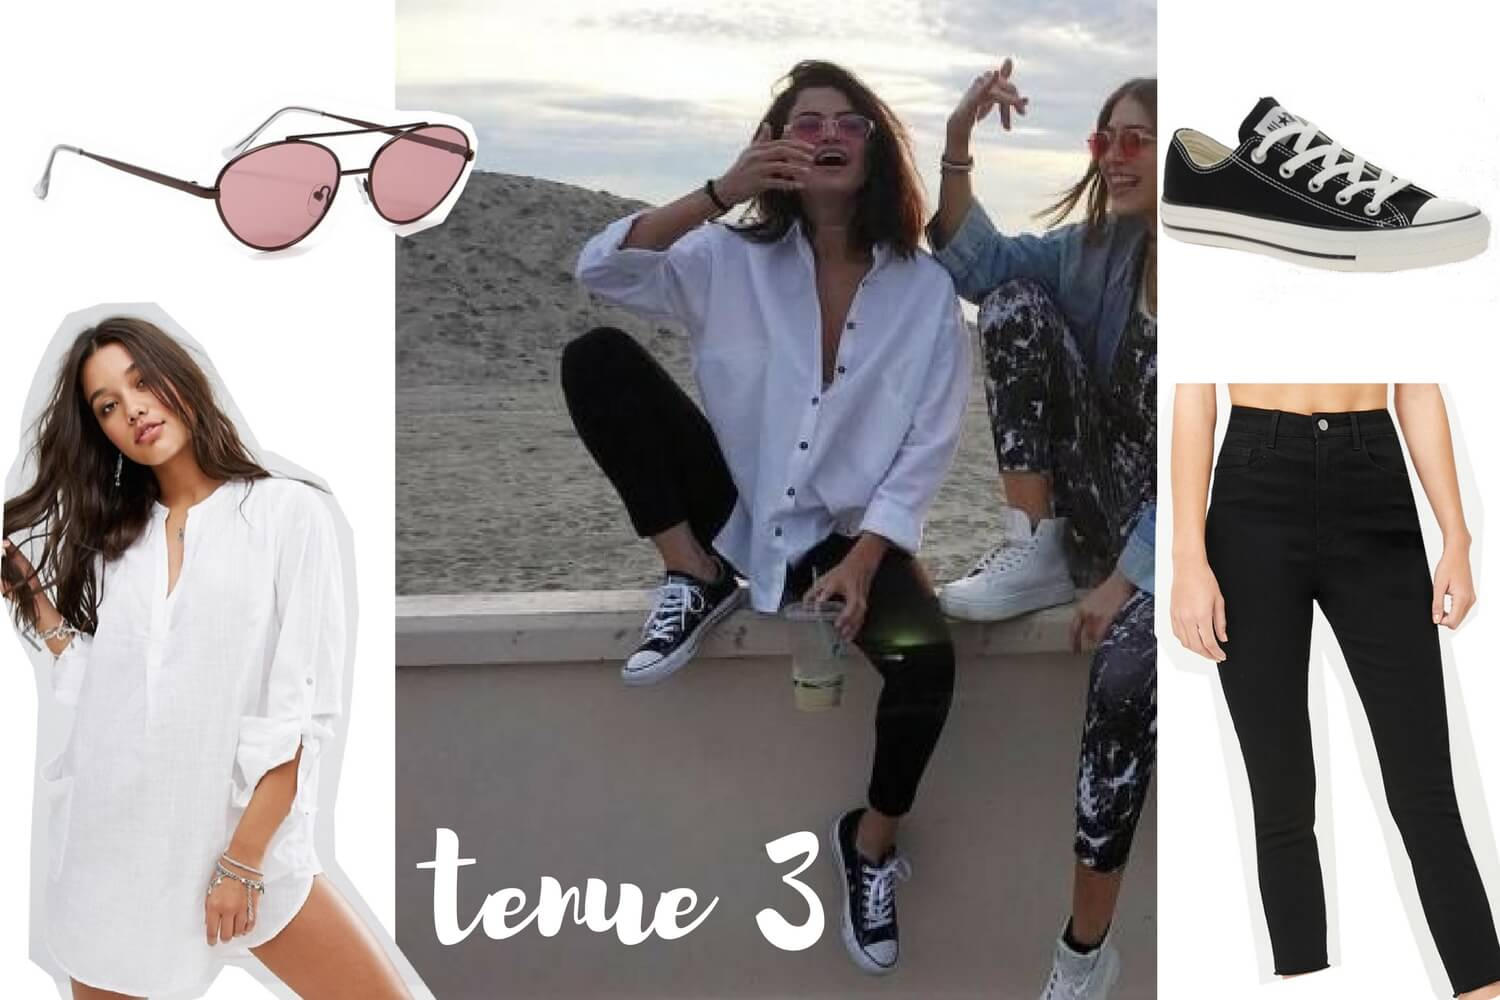 Get the look Selena Gomez tenue 3